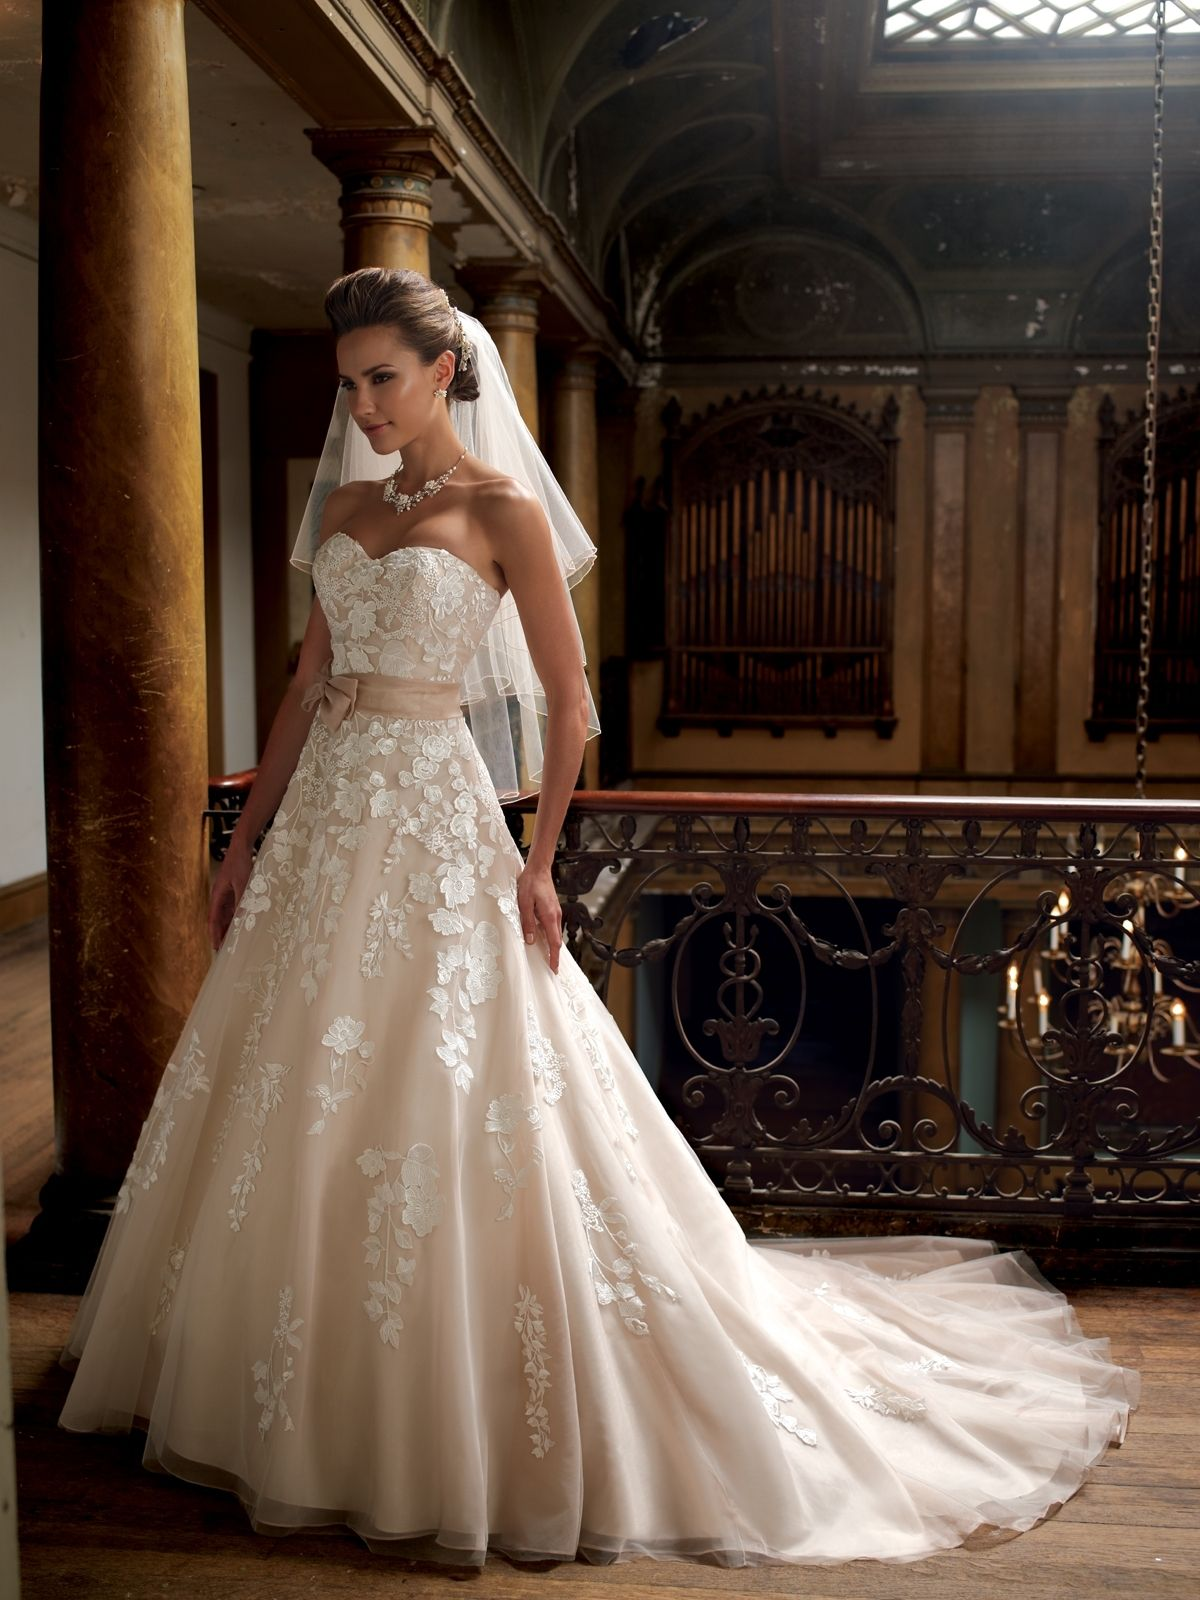 Wedding Dresses Albuquerque | Wedding Dress | Pinterest | Wedding ...